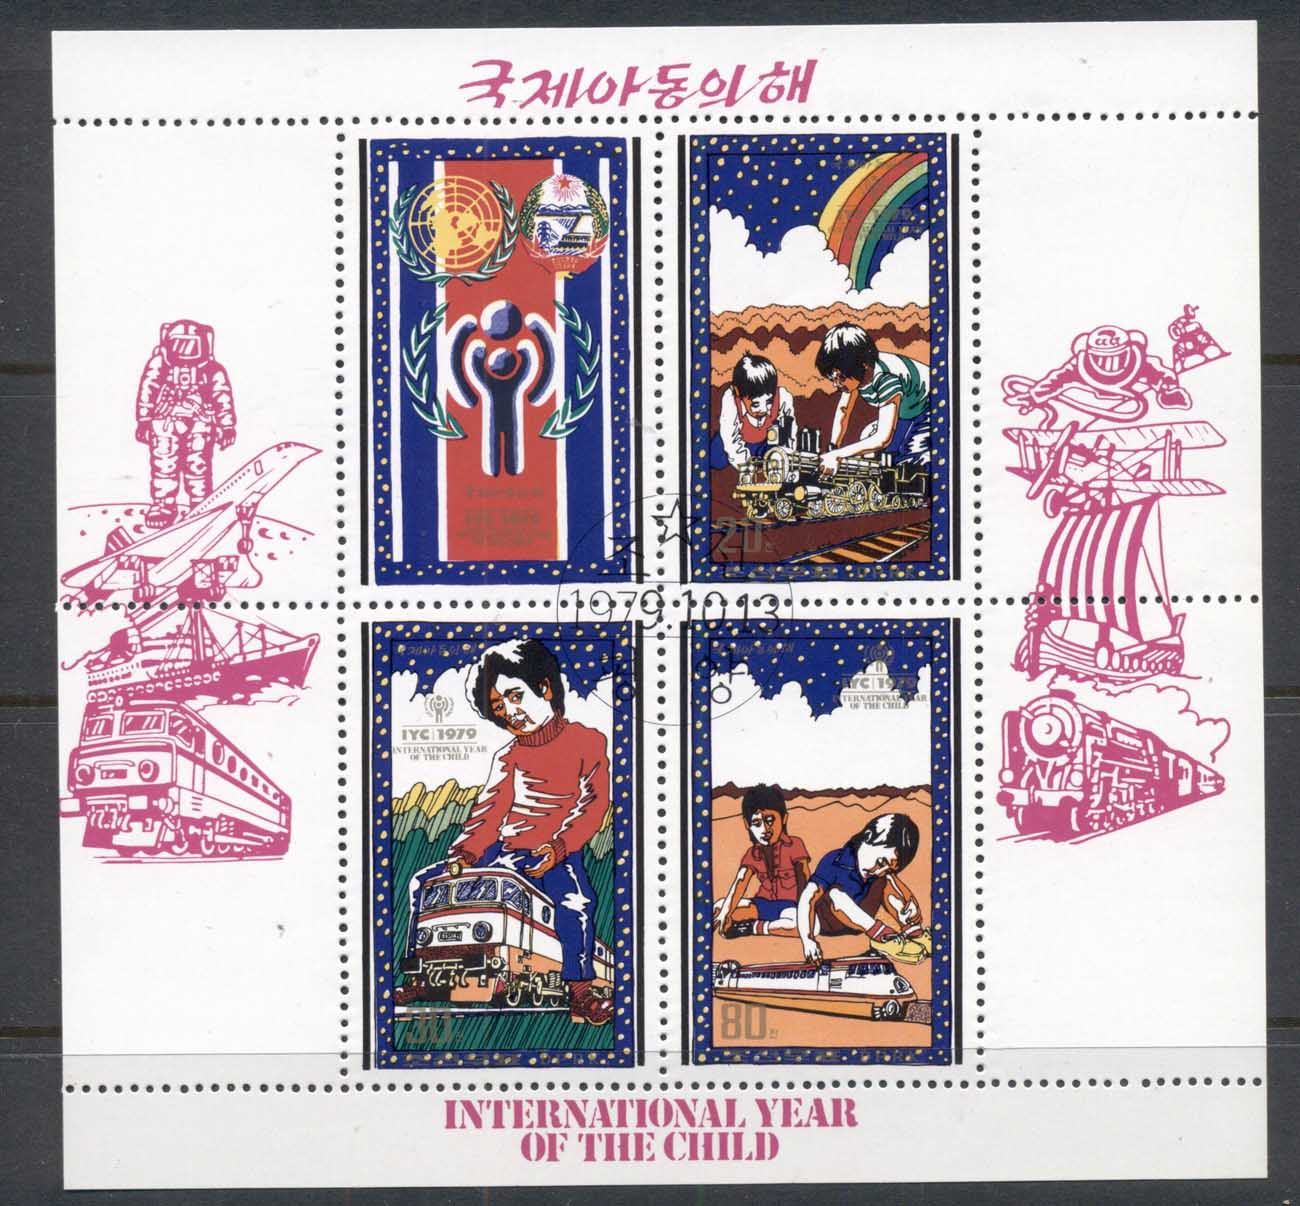 South East Asia 1979 IYC International Year of the Child, pink MS CTO